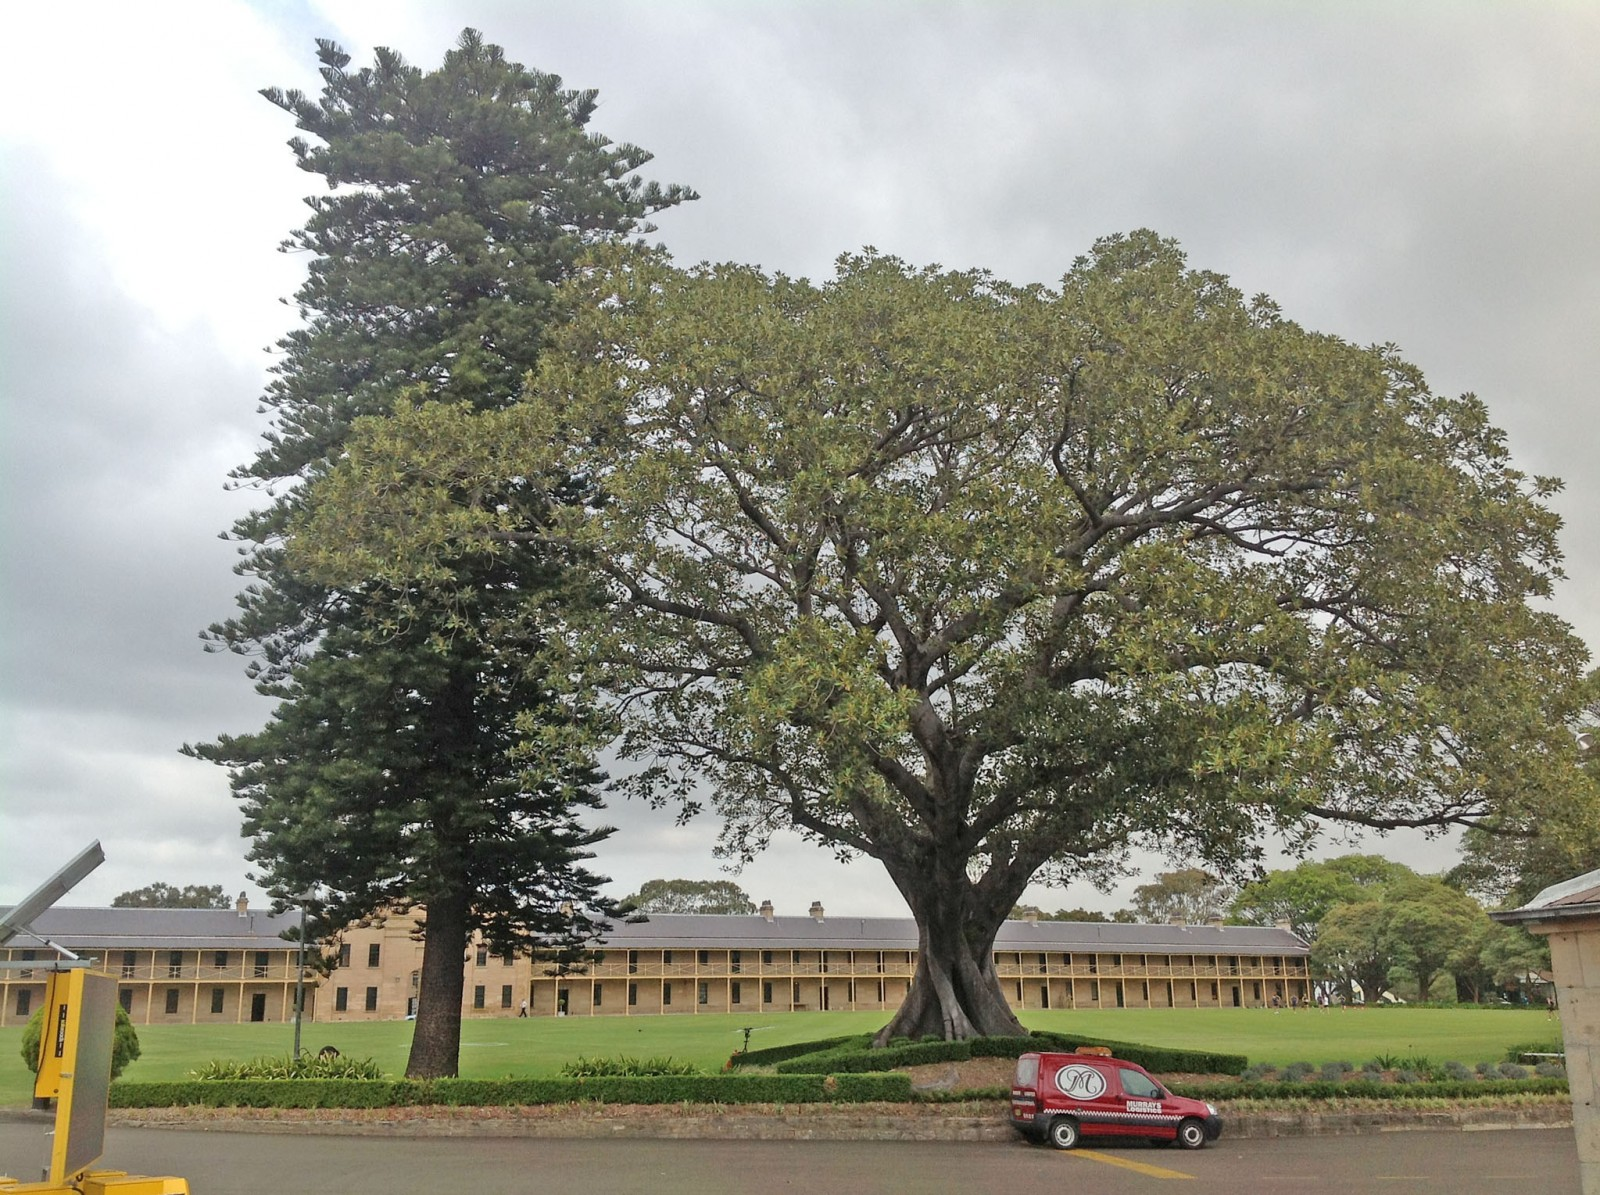 Moreton Bay Figs and Norfolk Island Pines